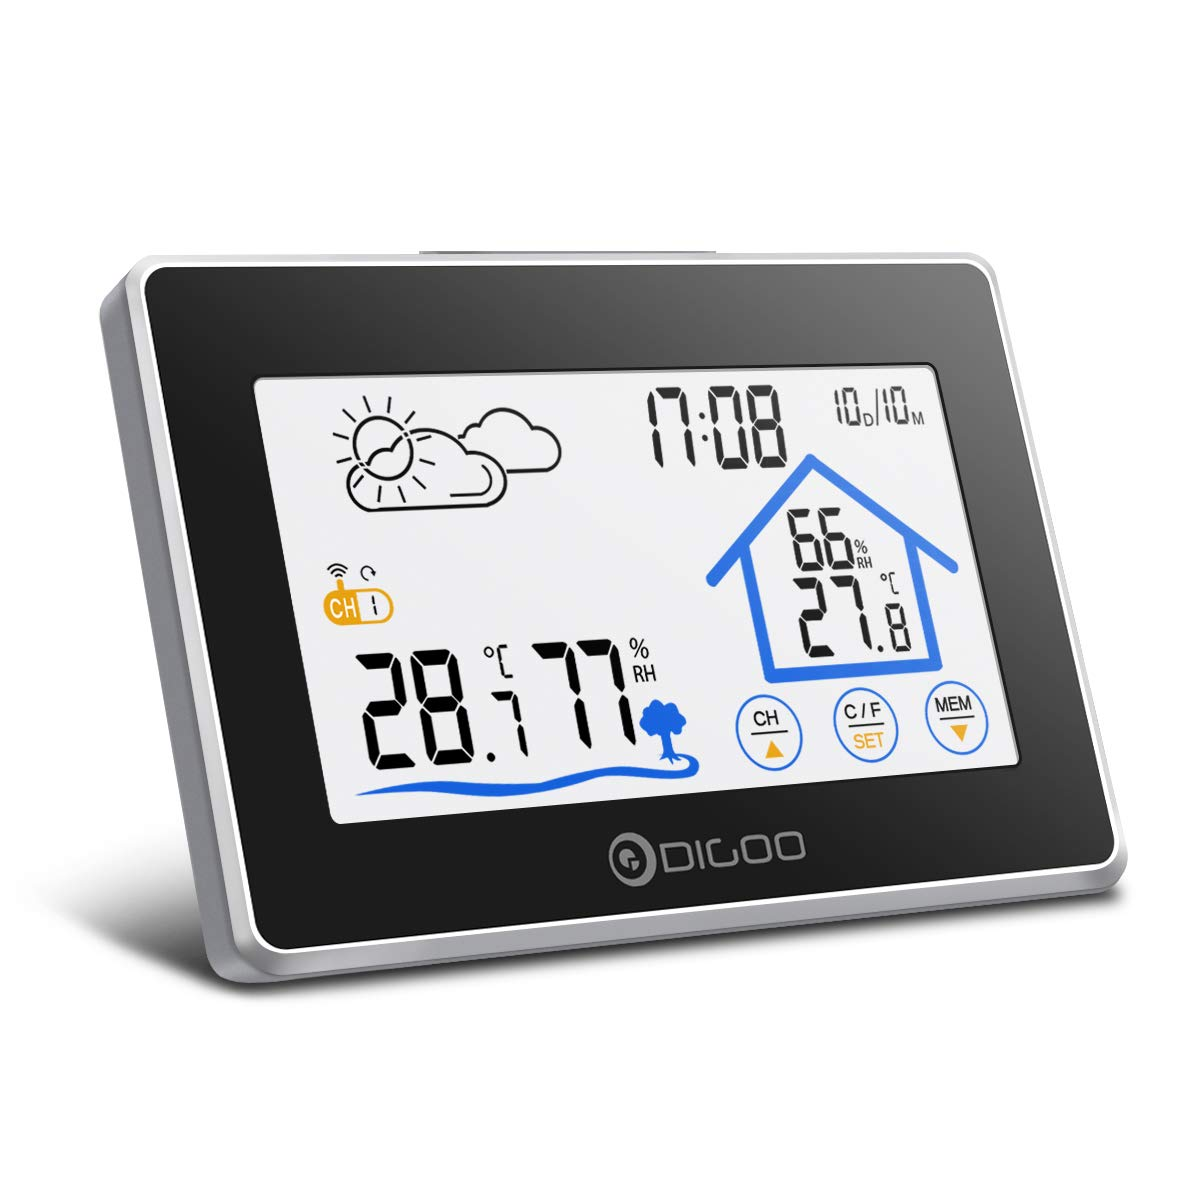 DIGOO Wireless Weather Station, DG-TH8380 In&Outdoor Thermometer Hygrometer with Touch Screen, Outdoor Sensor, Weather Forecast, Alarm Clock Snooze Function for Home, Bedroom, Office Viceirye DIGOOviceirye1181